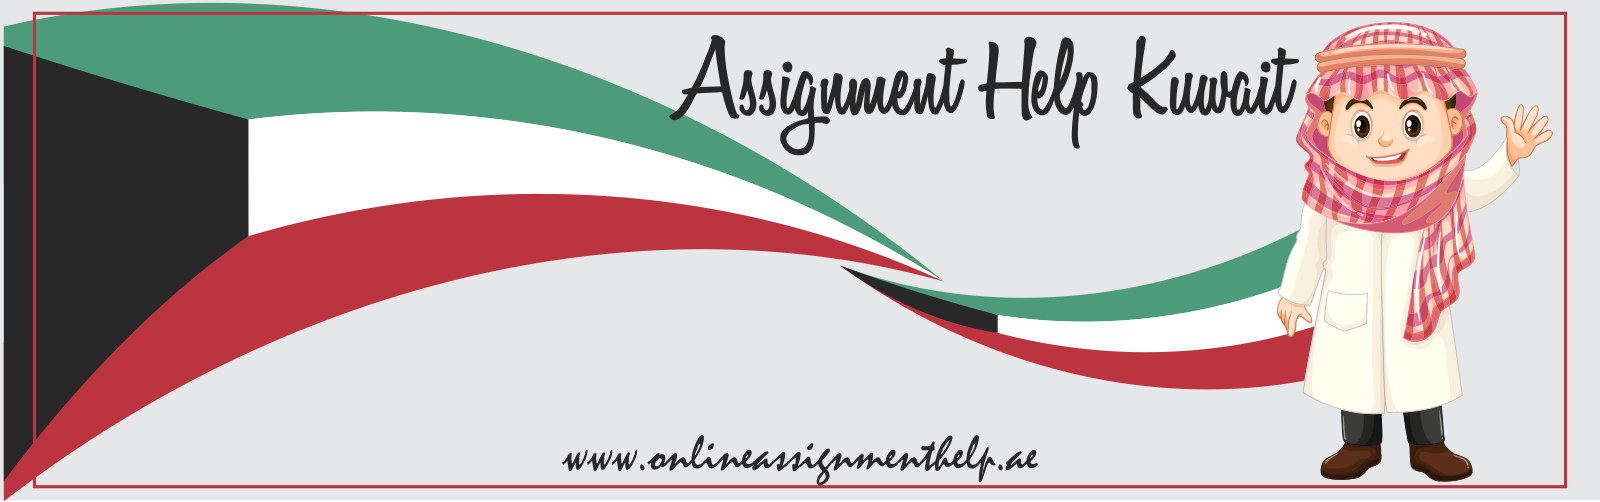 Assignment Help Kuwait